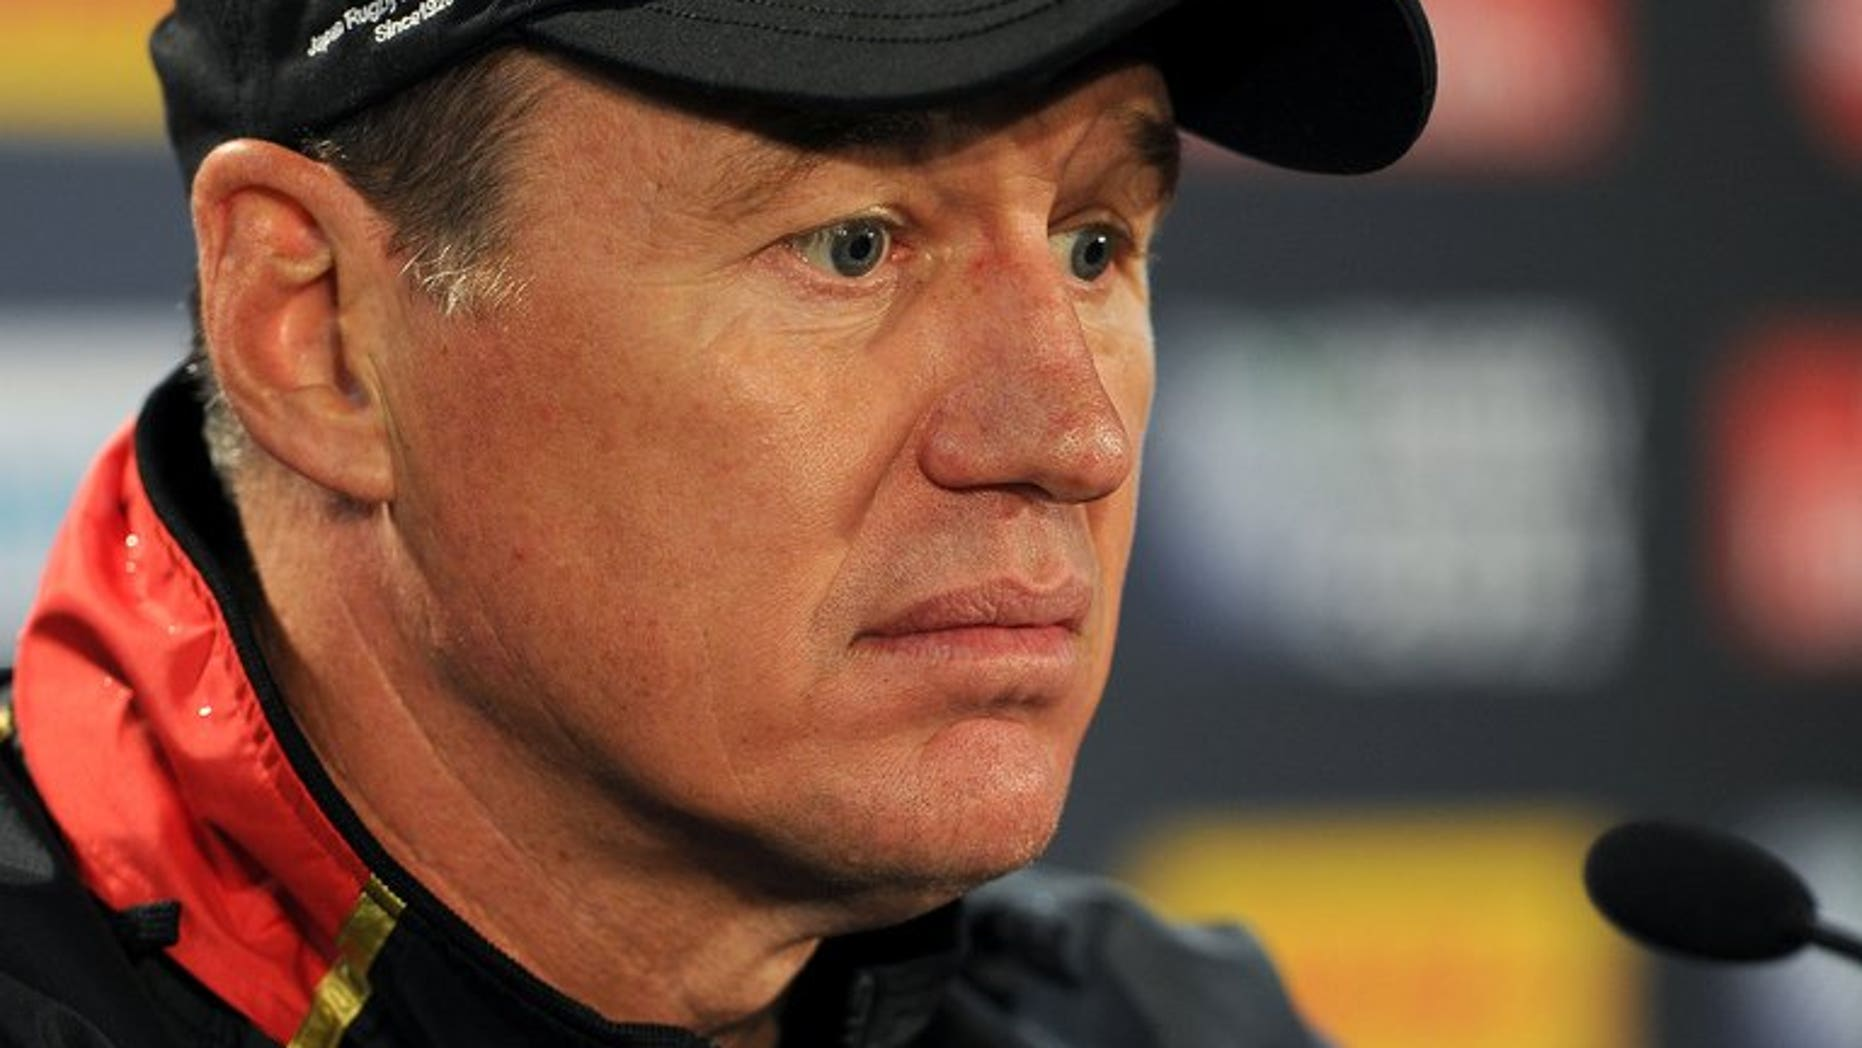 Coach John Kirwan, pictured during a press conference in Hamilton, during the 2011 Rugby World Cup. Kirwan, now Auckland Blues coach, is demanding referee Chris Pollock be held accountable for a red card ruling which he said ruined Saturday's Super 15 match against the Waikato Chiefs.